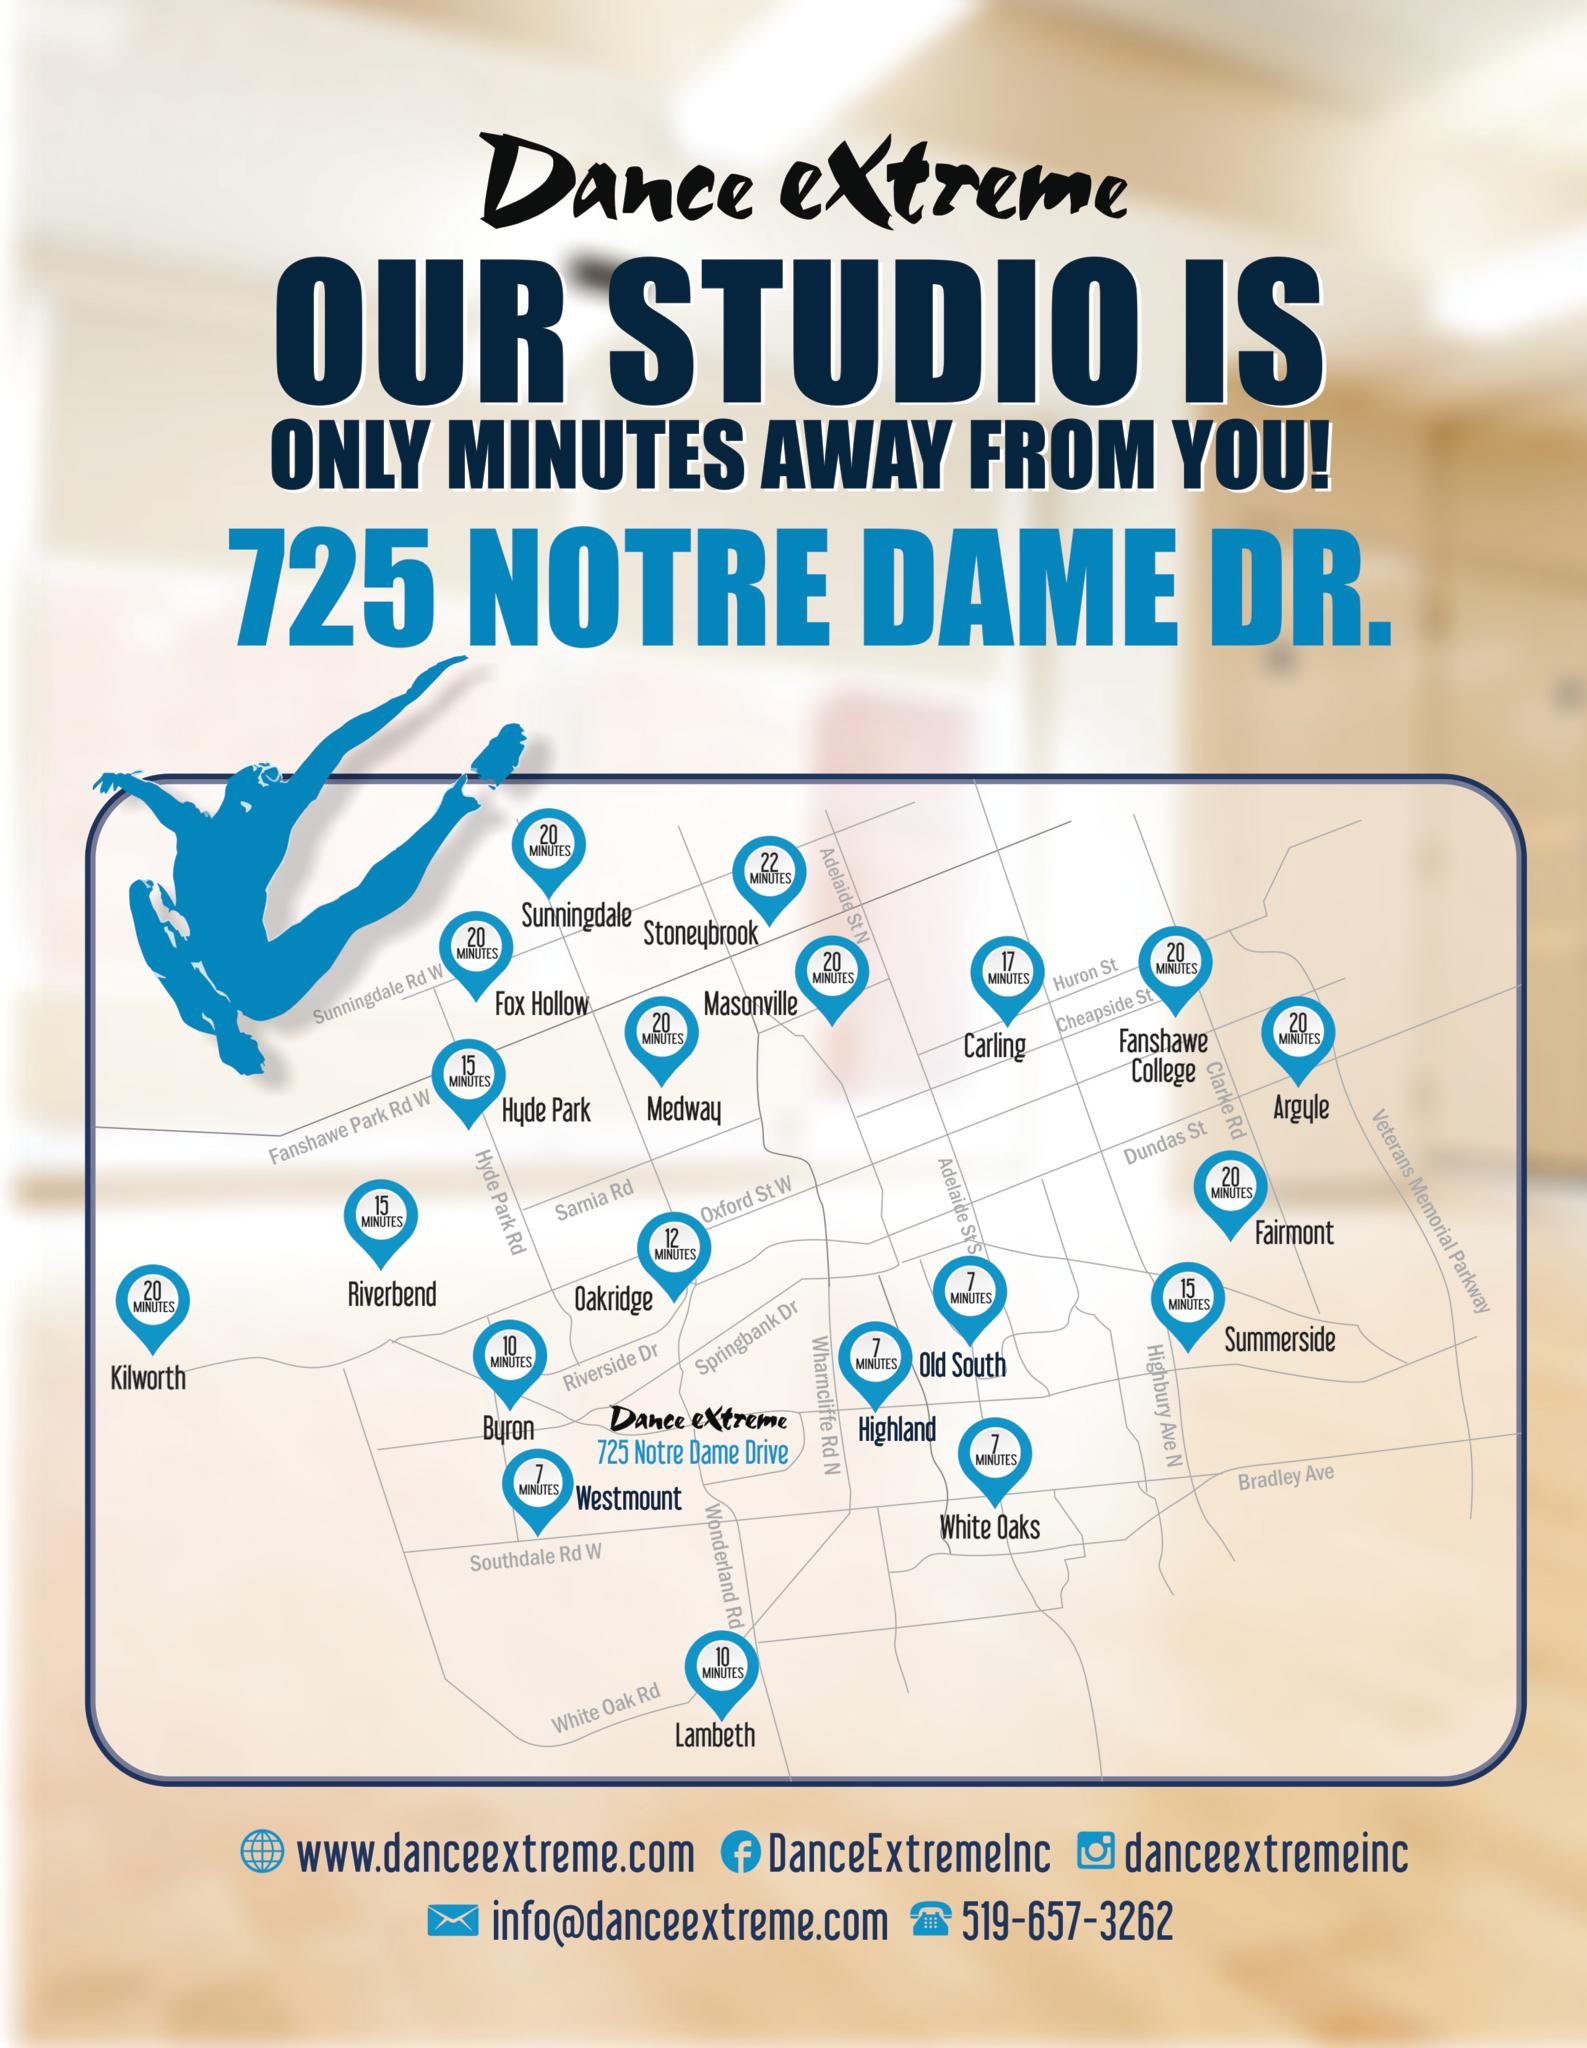 Dance Extreme Inc in London: Only minutes away from you! Come visit our at 725 Notre Dame Drive.